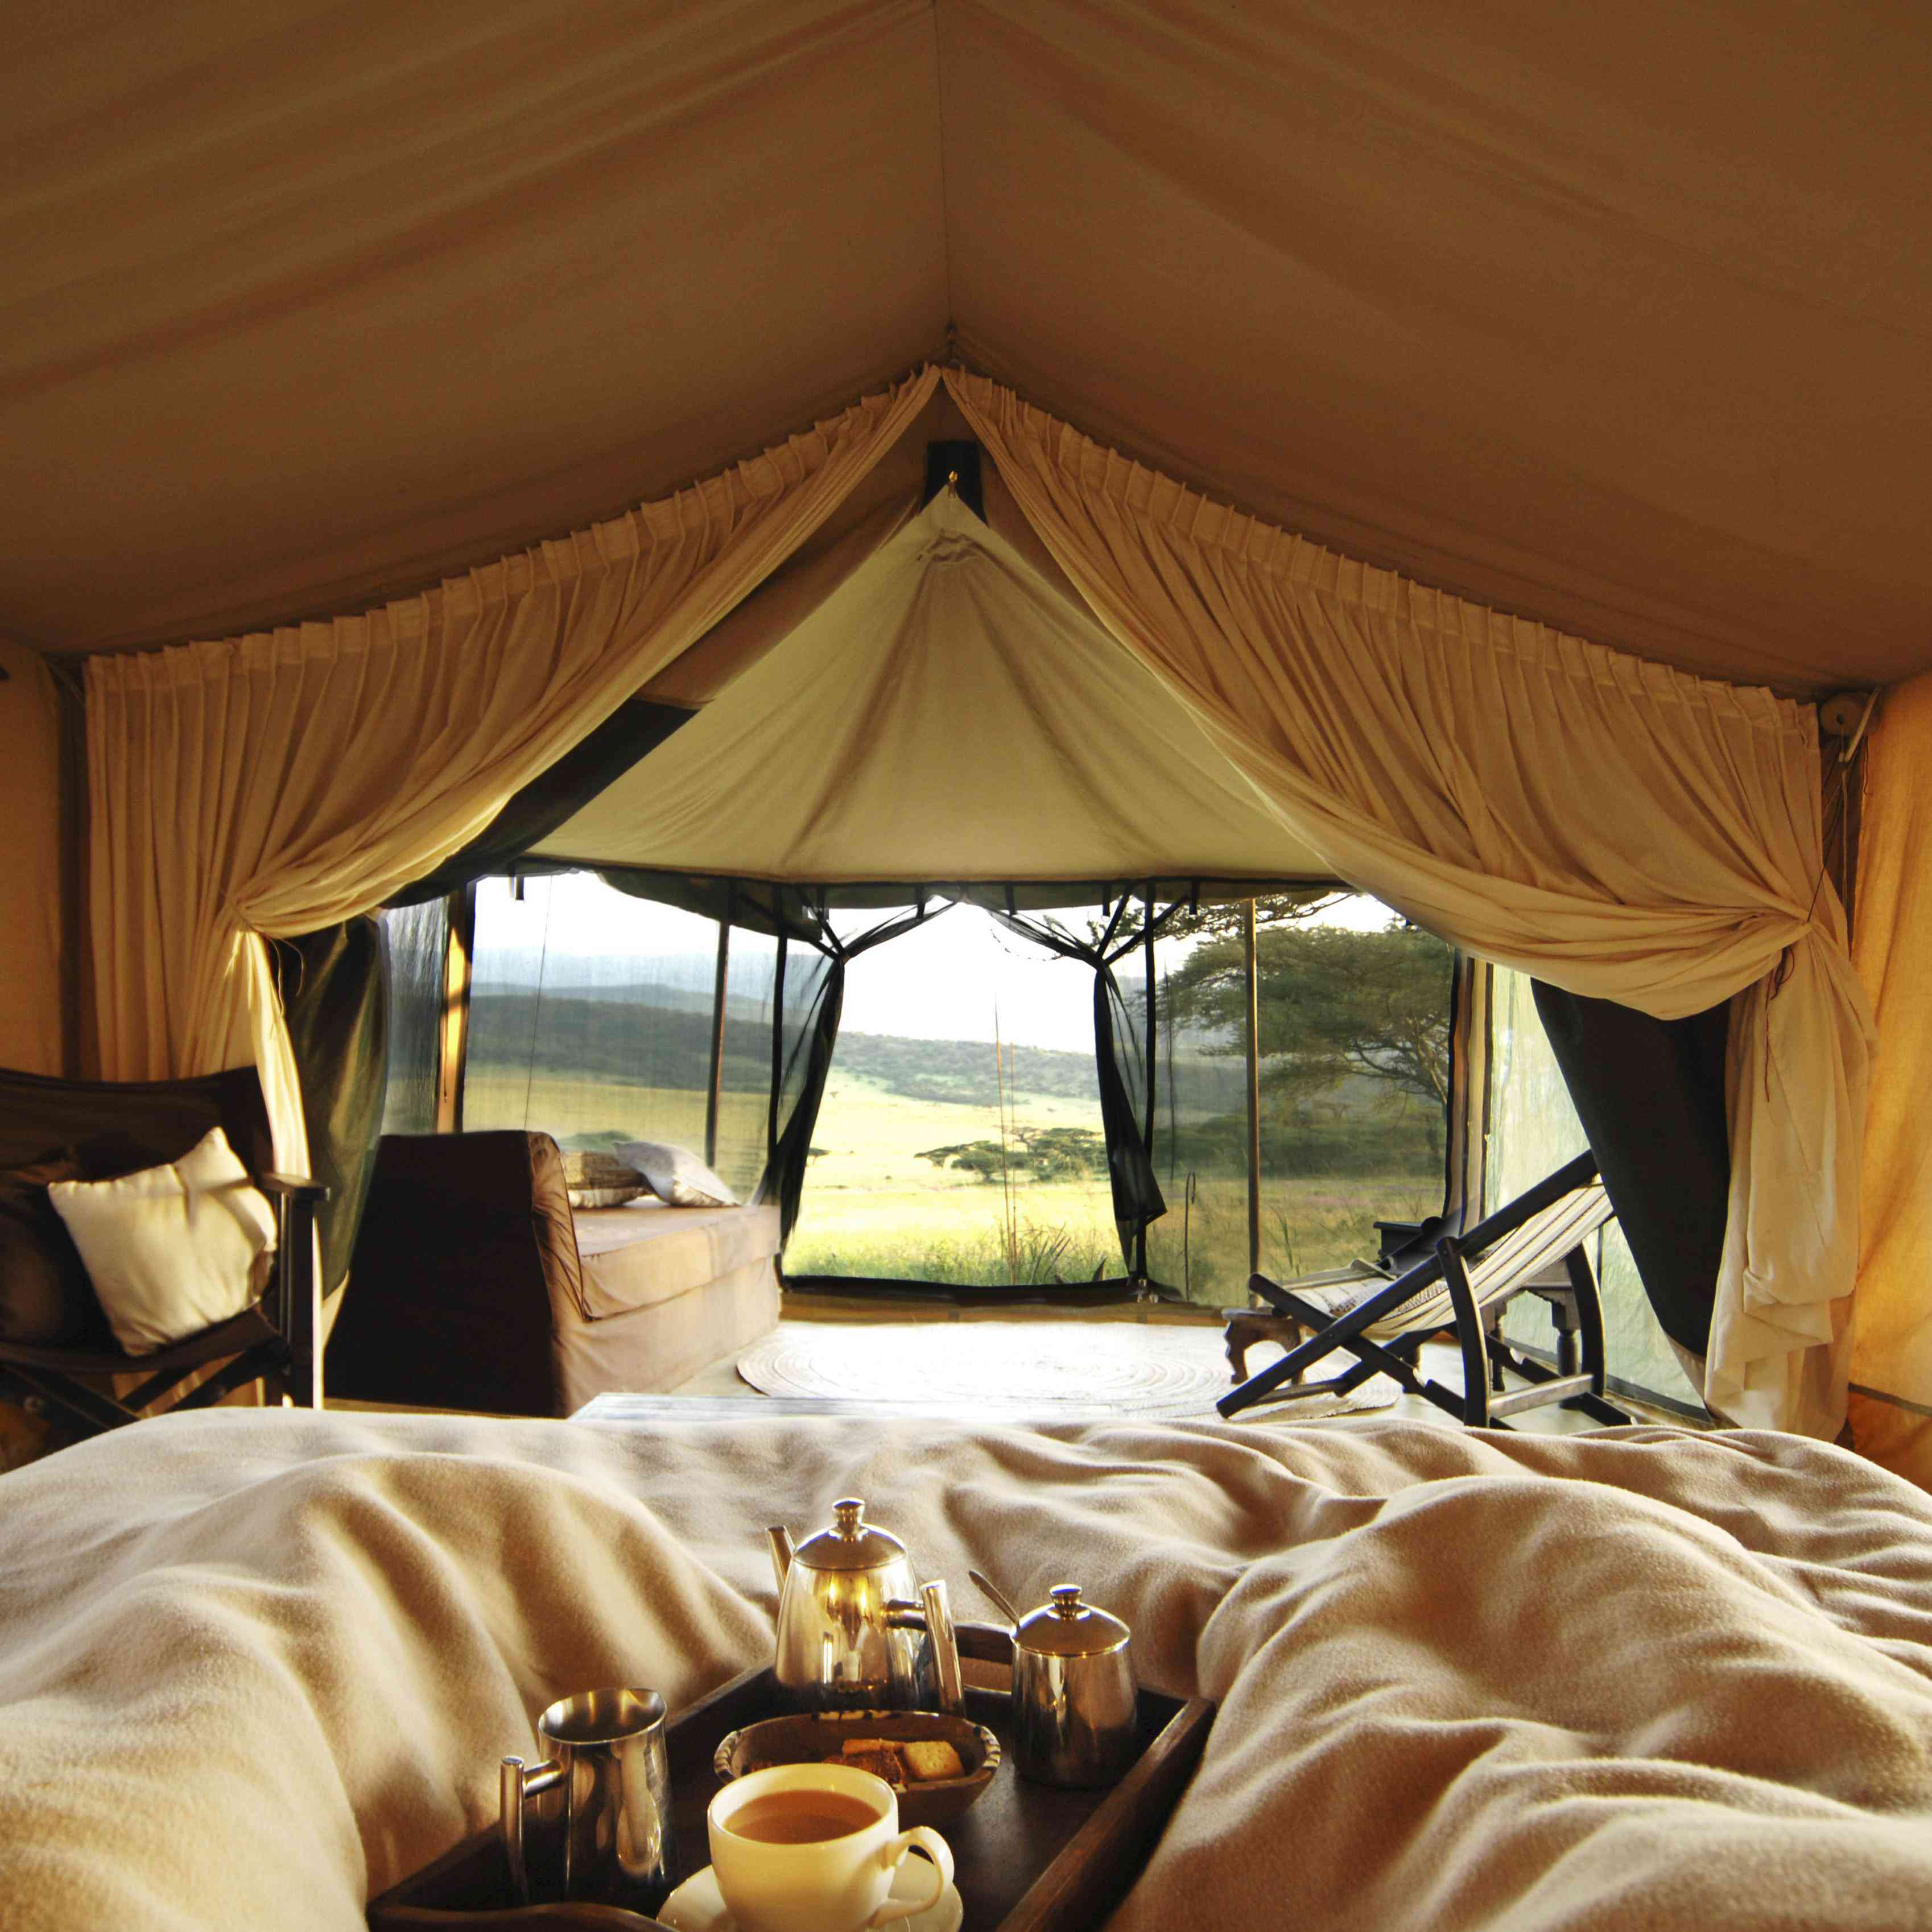 What to Pack for a Safari Honeymoon